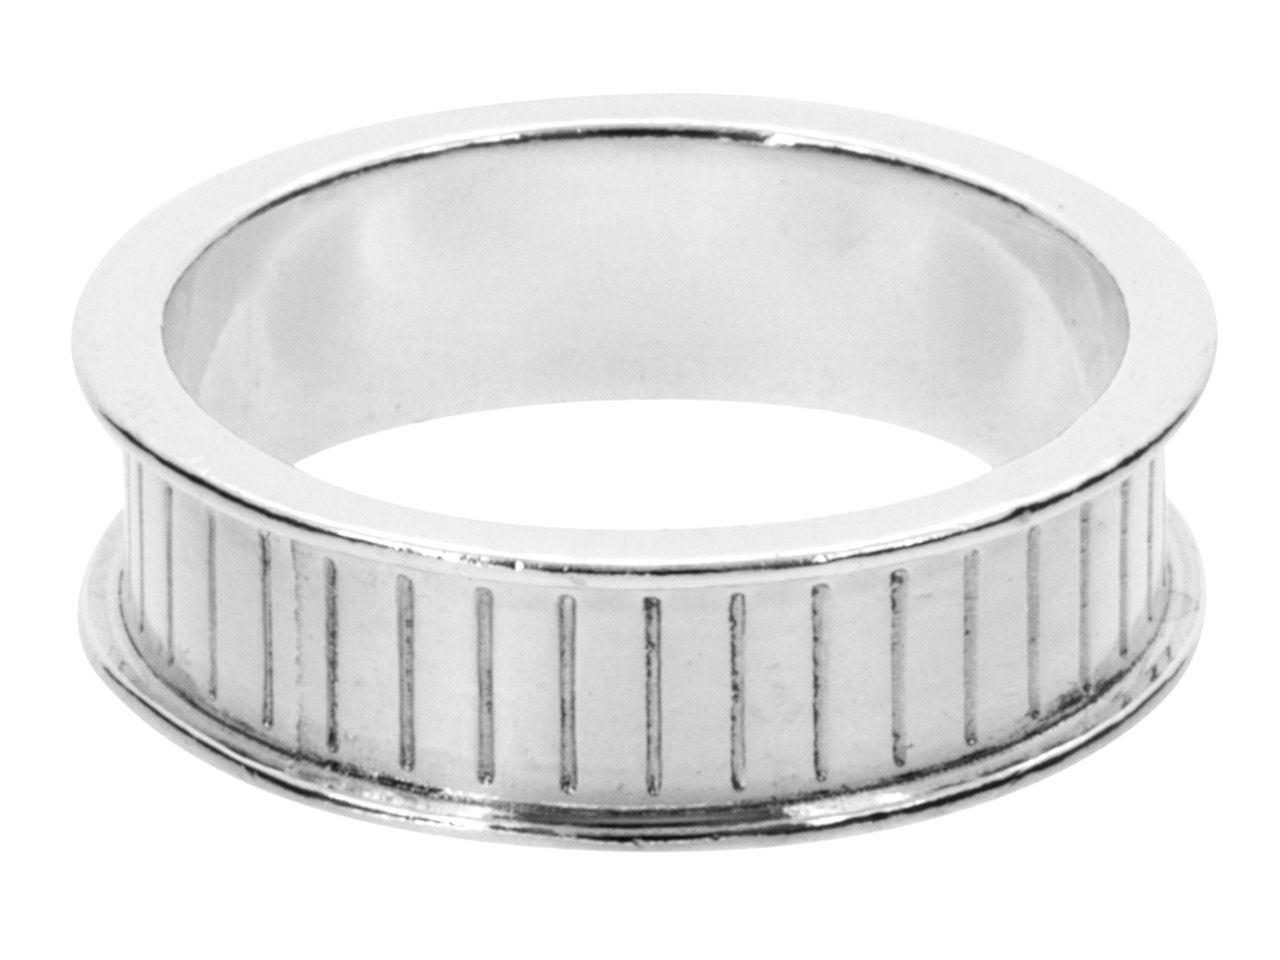 Silver Channel Ring Core 6mm Wide, Large